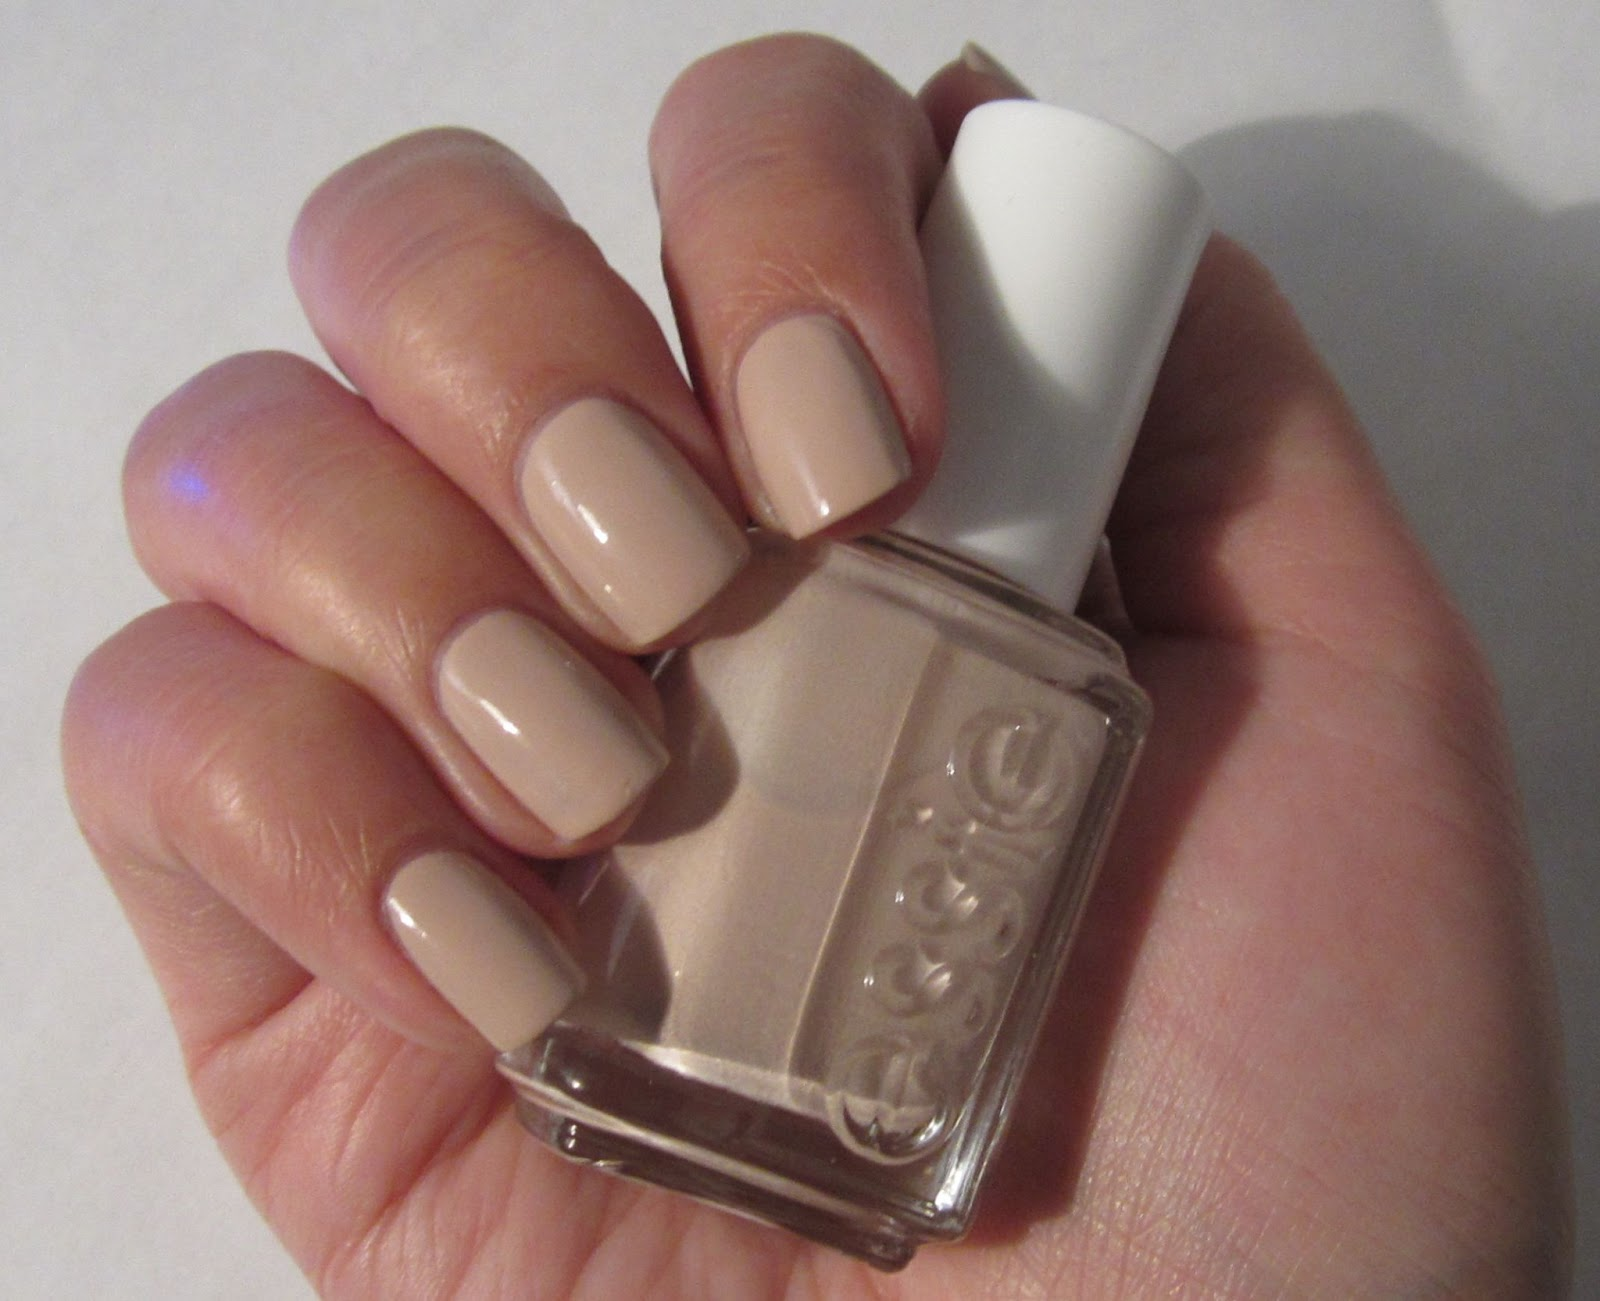 Shaping Nails Oval and Essie Barefoot & Topless